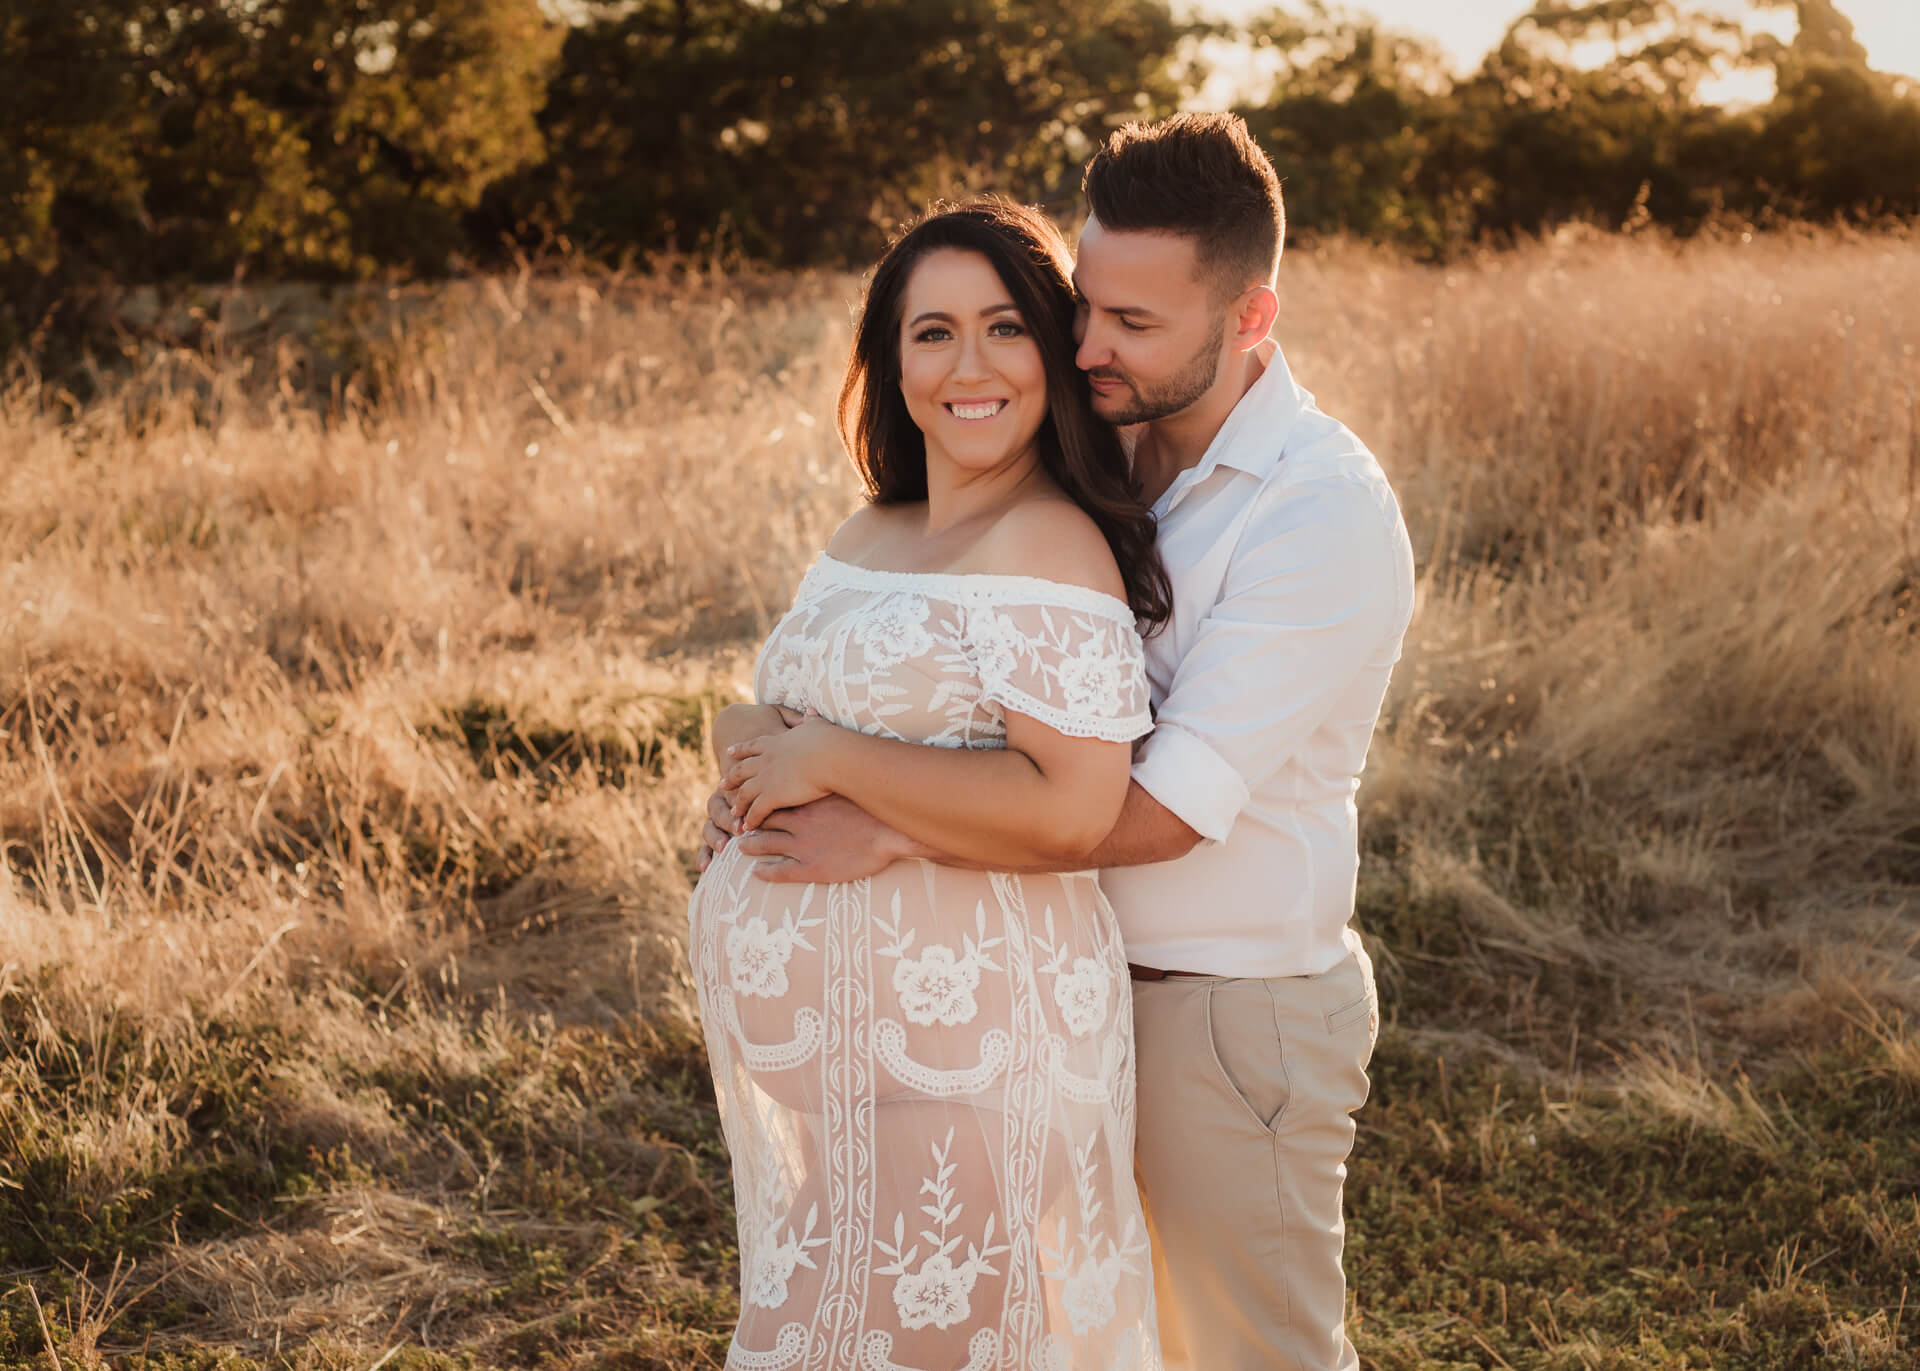 maternity photographer Adelaide